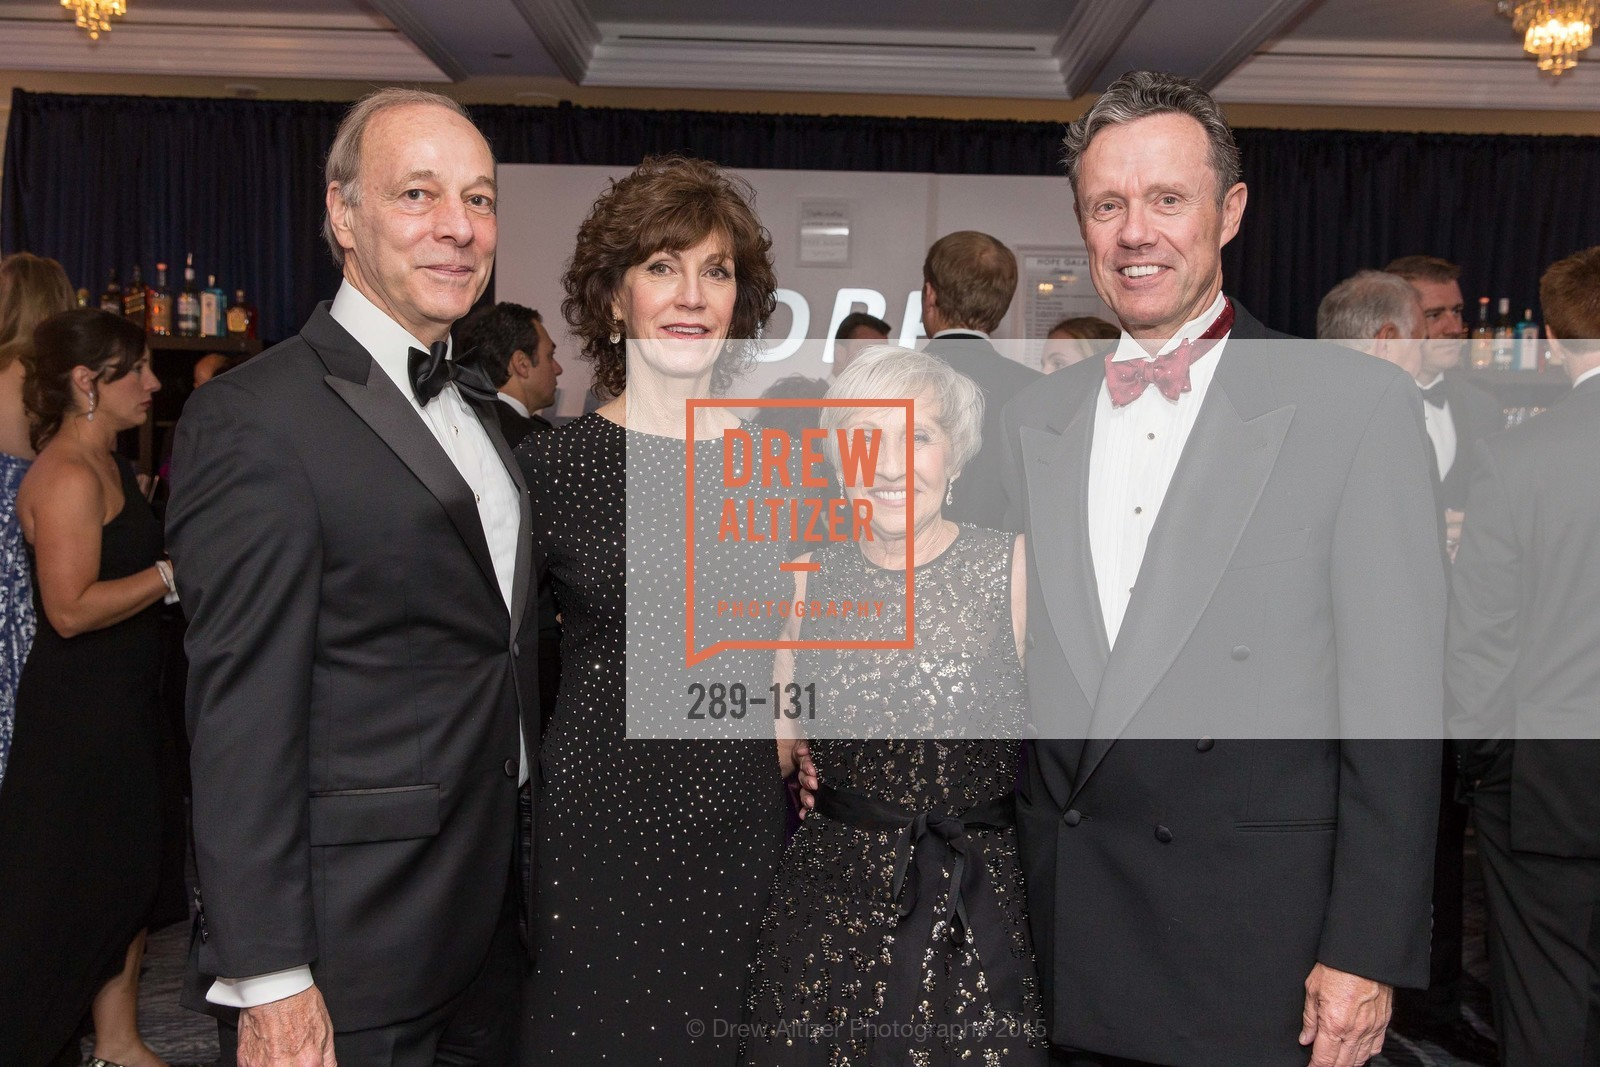 Timothy Connor, Lee Connor, Pam Sagan, Bill Sagan, JUVENILE DIABETES RESEARCH FOUNDATION  Hope Gala, The Ritz-Carlton, May 29th, 2015,Drew Altizer, Drew Altizer Photography, full-service event agency, private events, San Francisco photographer, photographer California